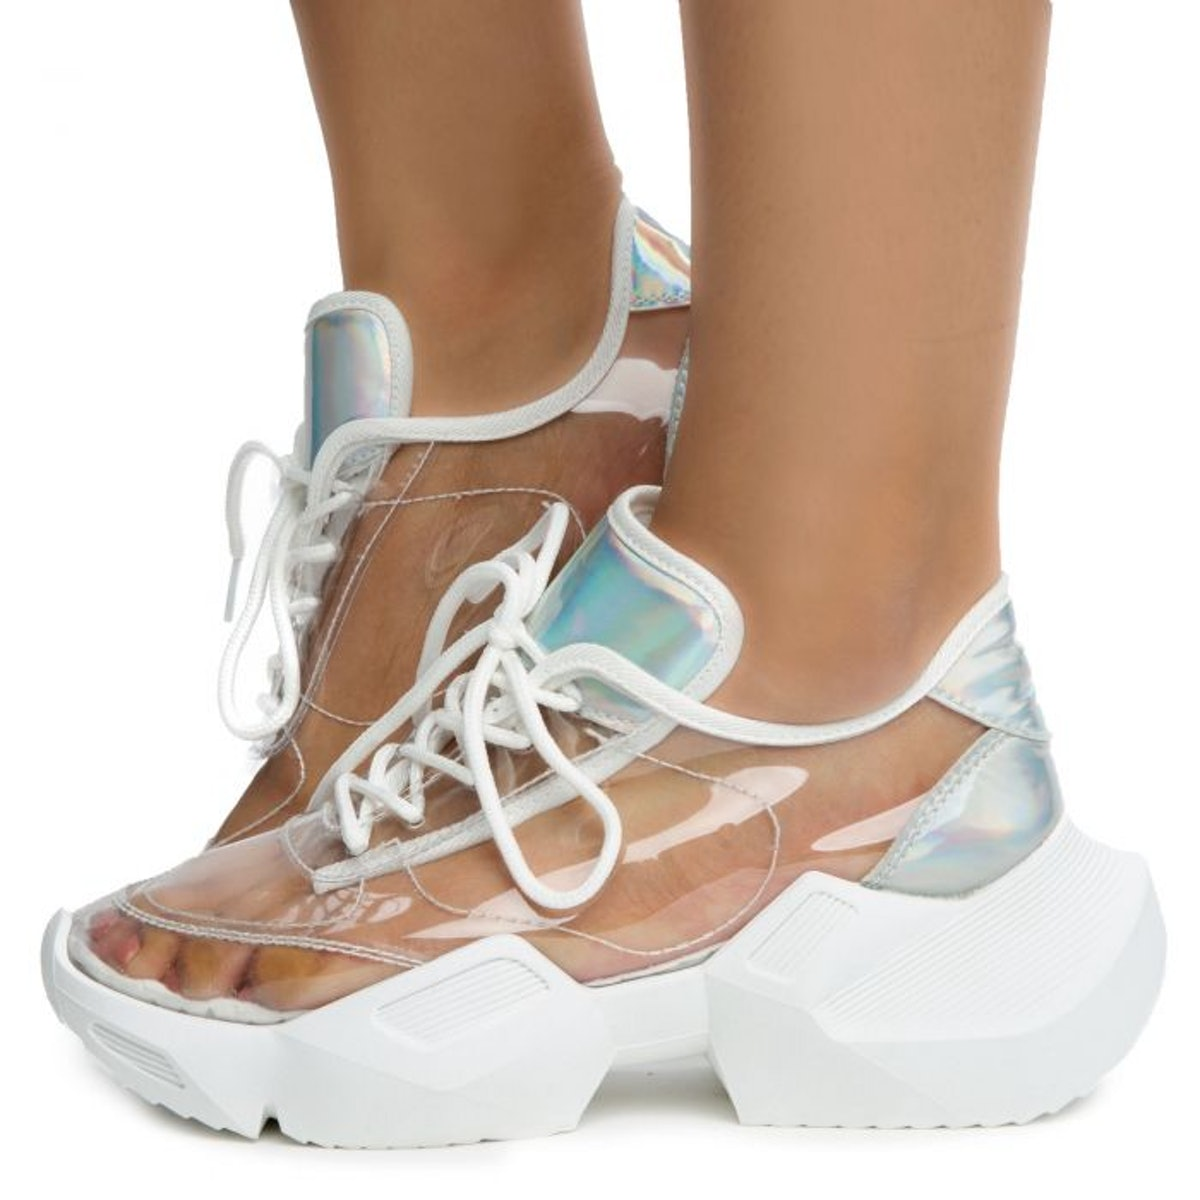 Yoki Shoes Nessa-01 Clear Sneakers